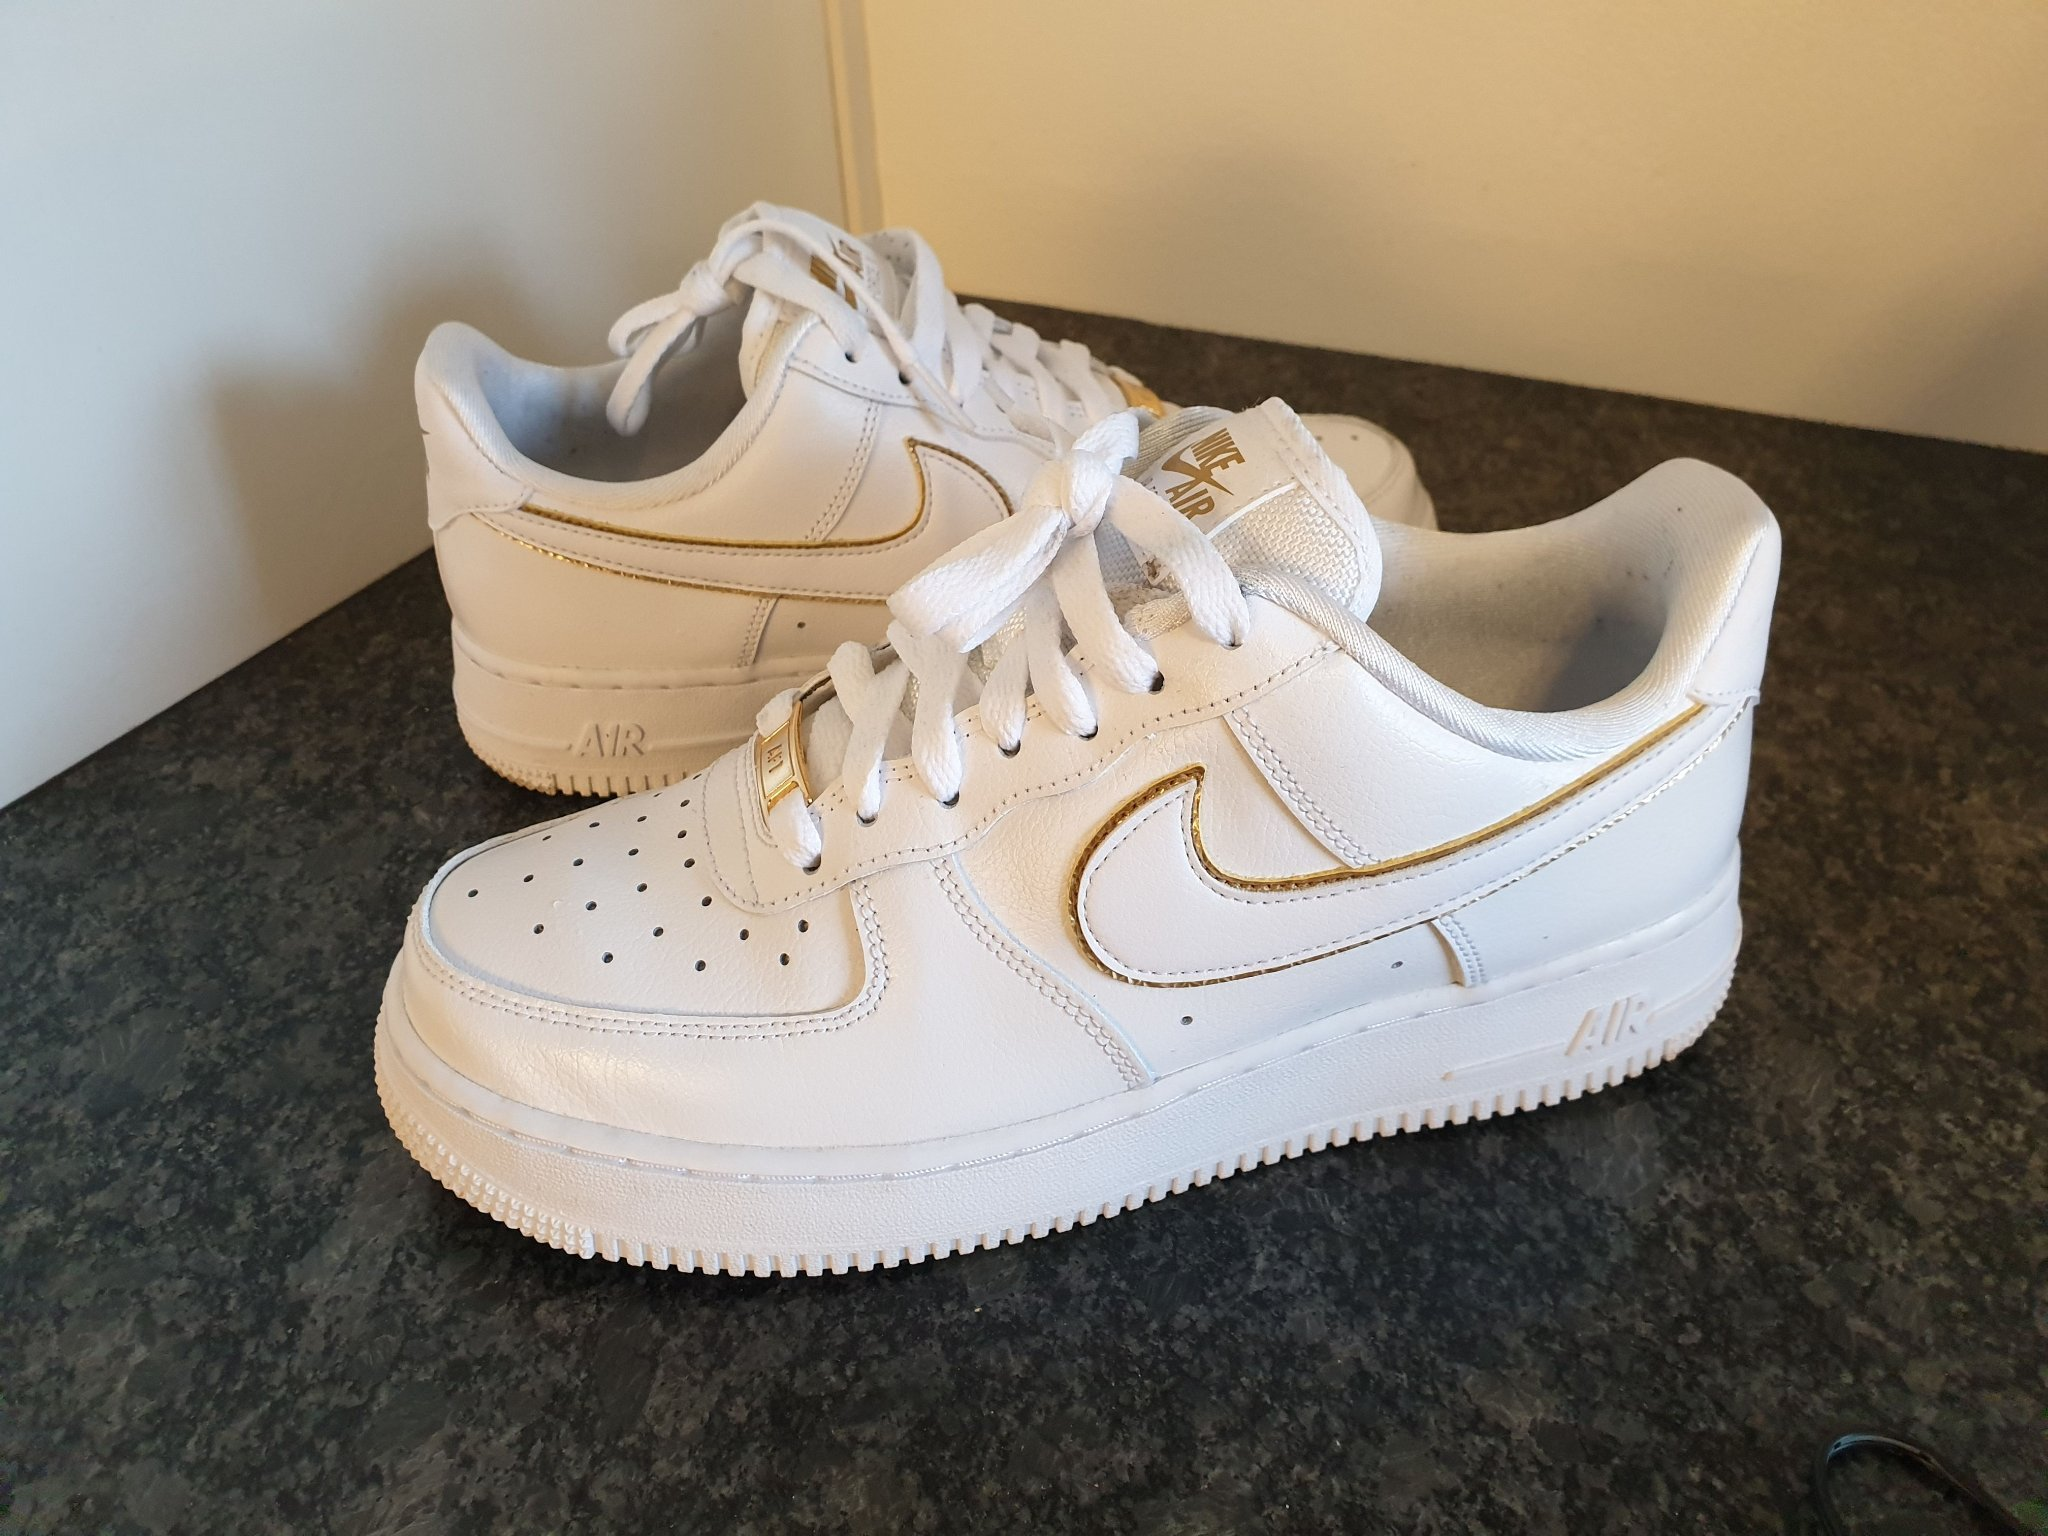 Nike Wmns Air Force 1 ´07   White   Sneakers   315115 150